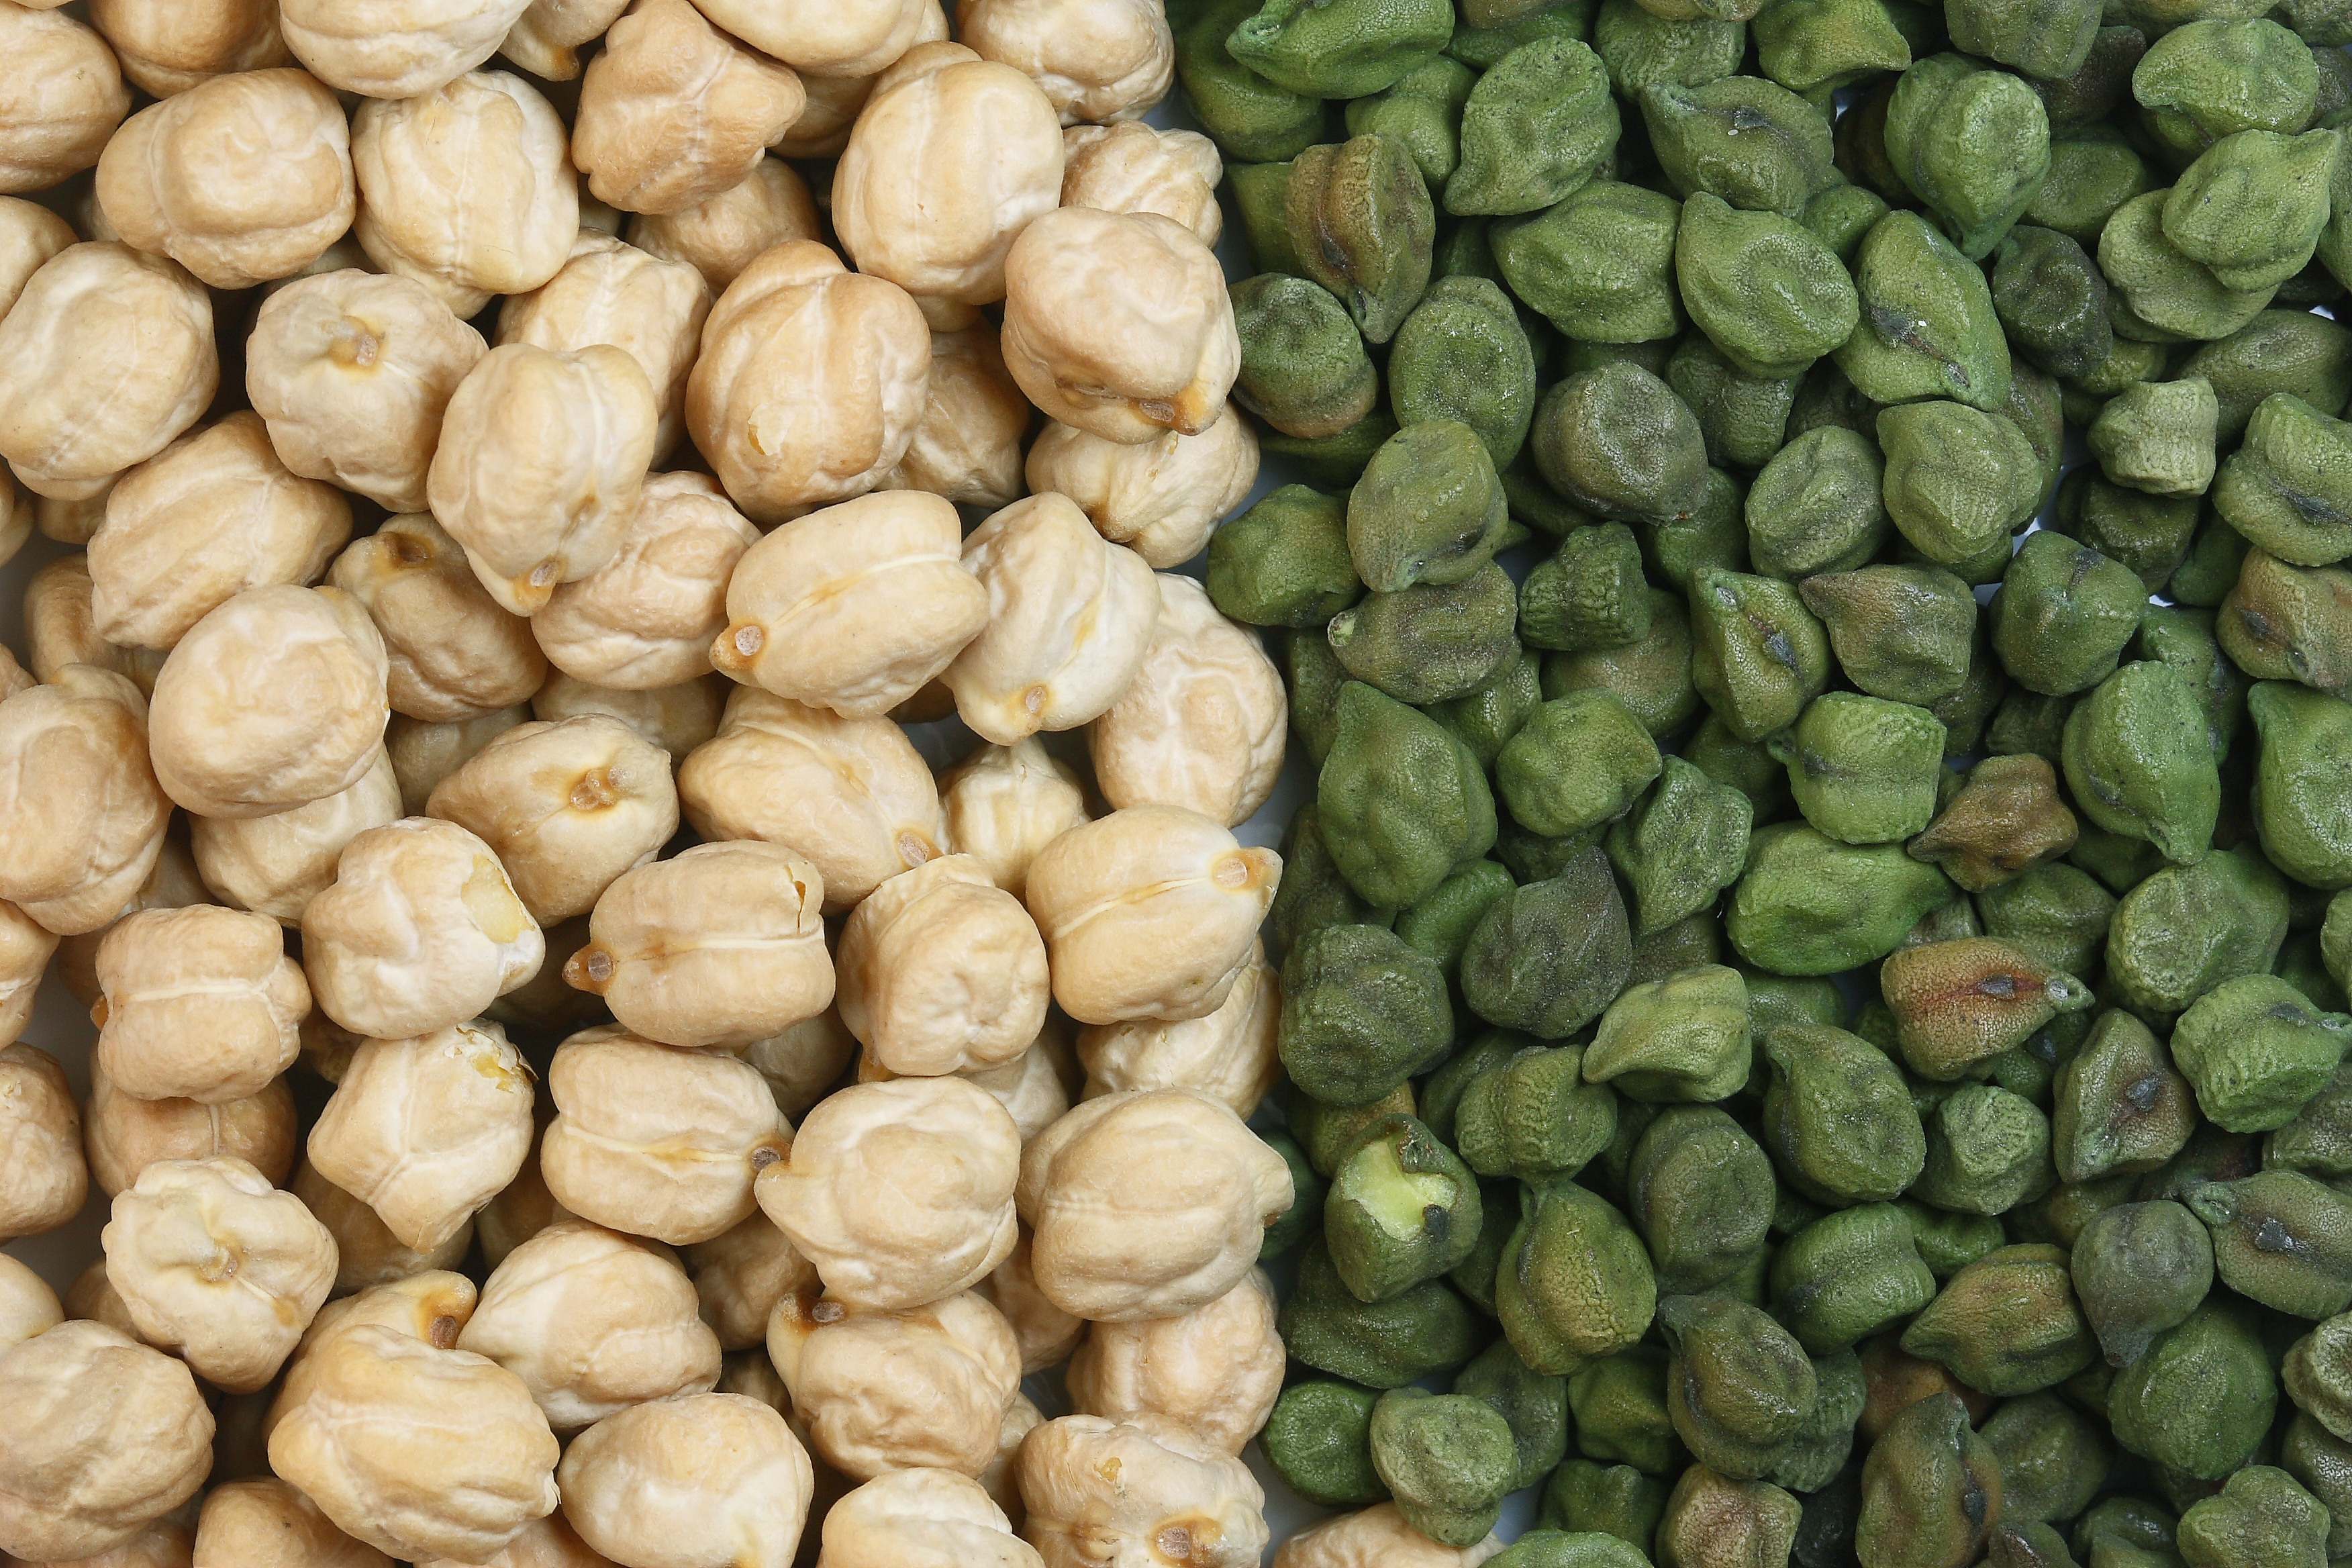 White & Green chickpeas. Photo credit: Wikipedia